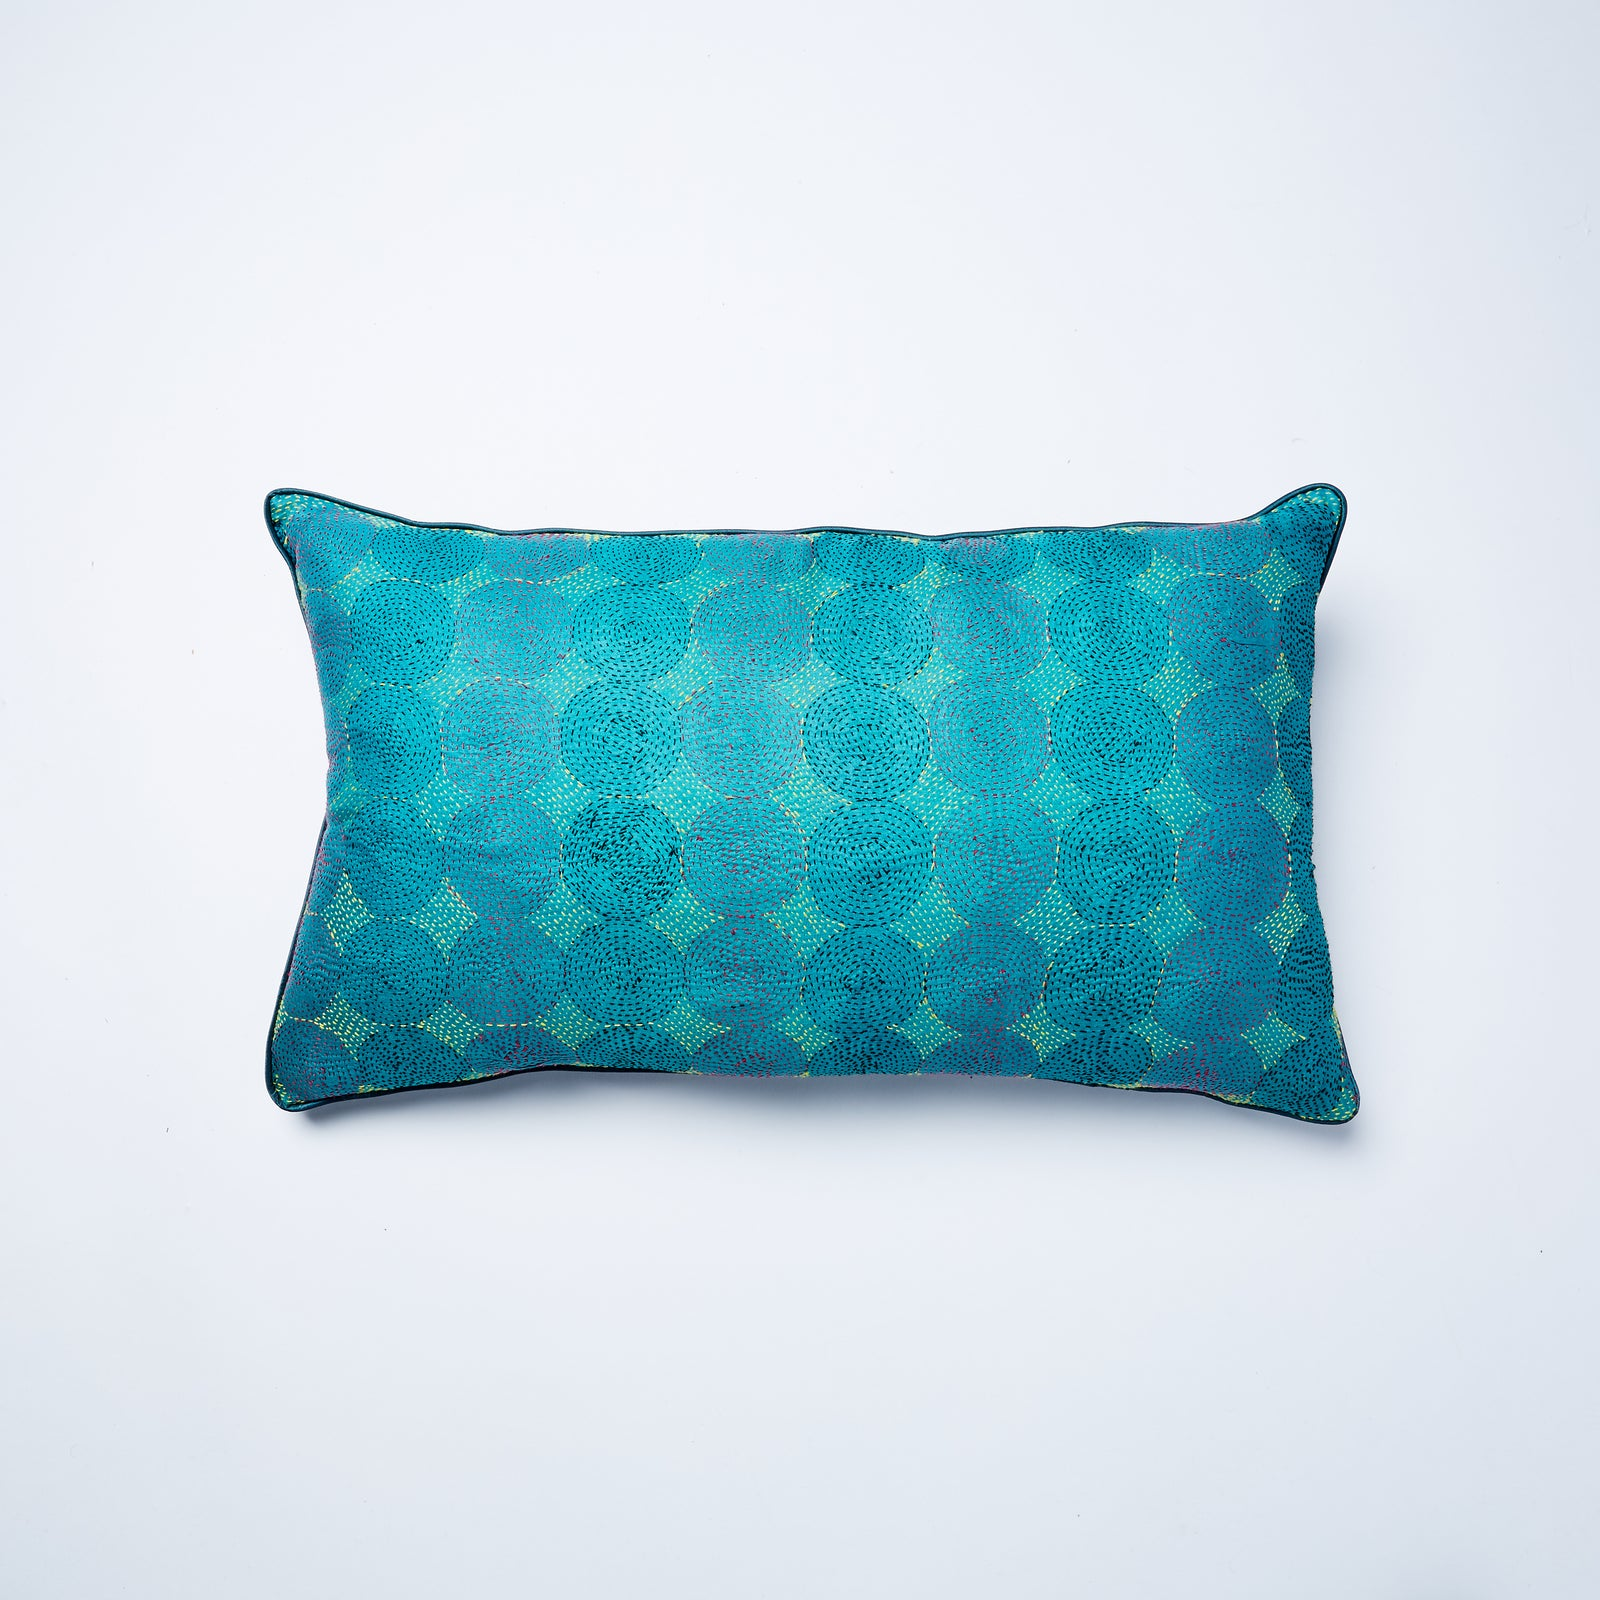 Rectangular cushion with stunning turquoise colours similar to a peacock. With a duck feather filling